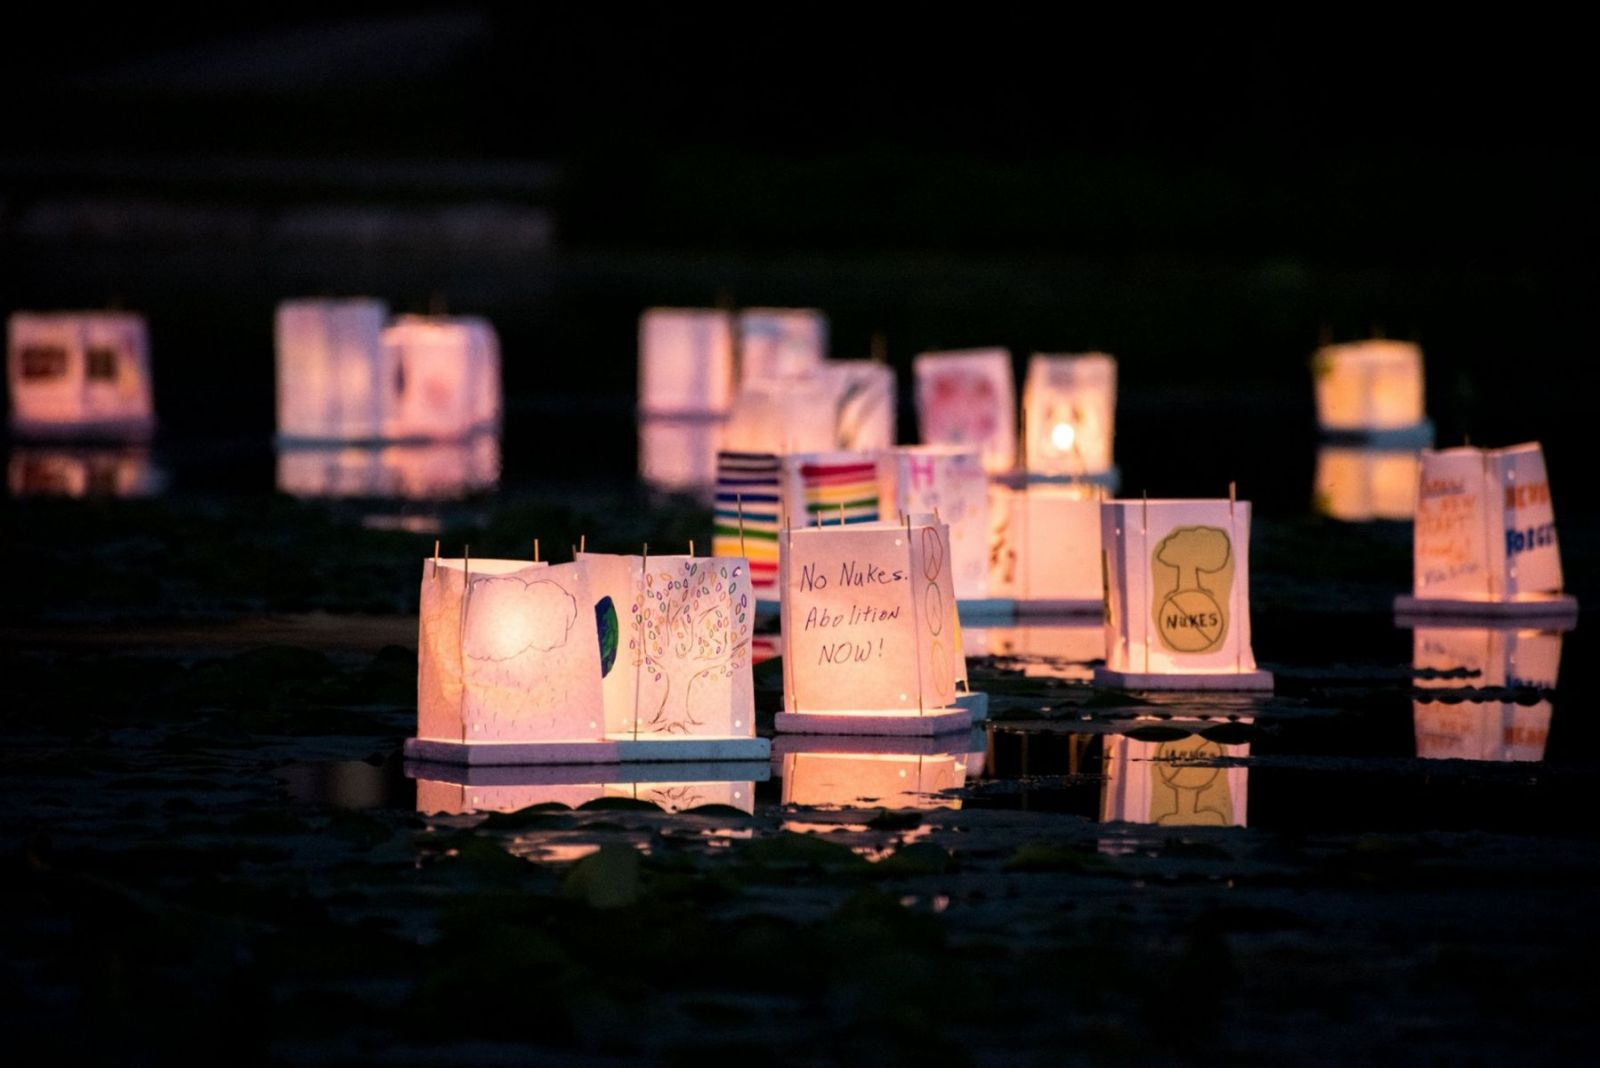 physicians for social responsibility photo of lanterns with messages written on them